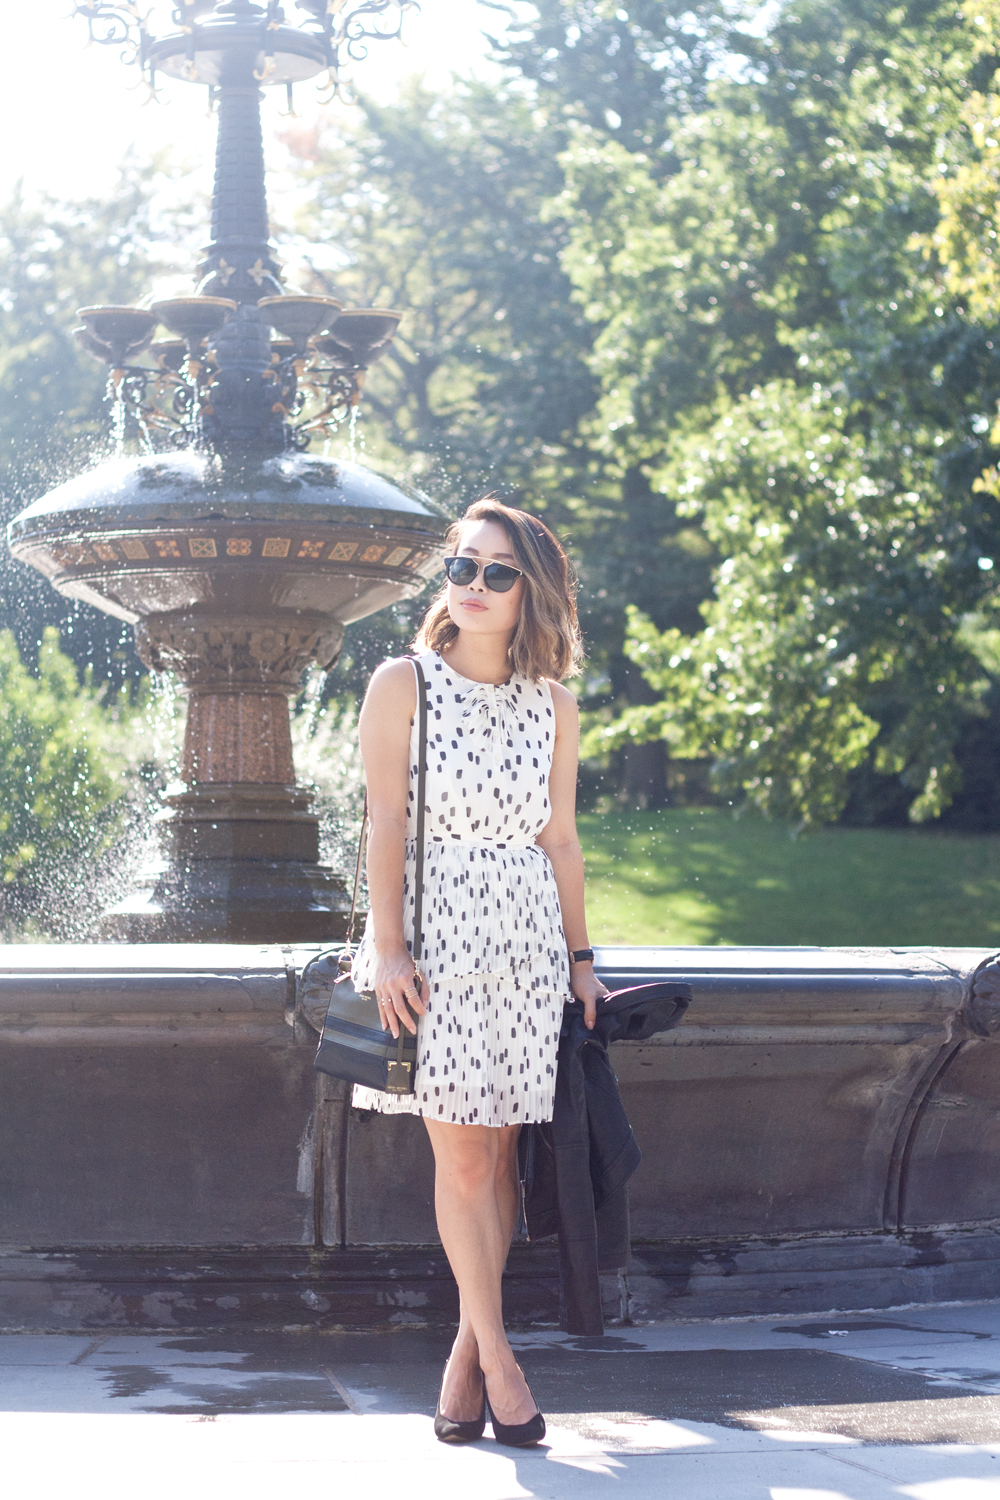 05nyc-centralpark-fountain-dots-dress-travel-fashion-style